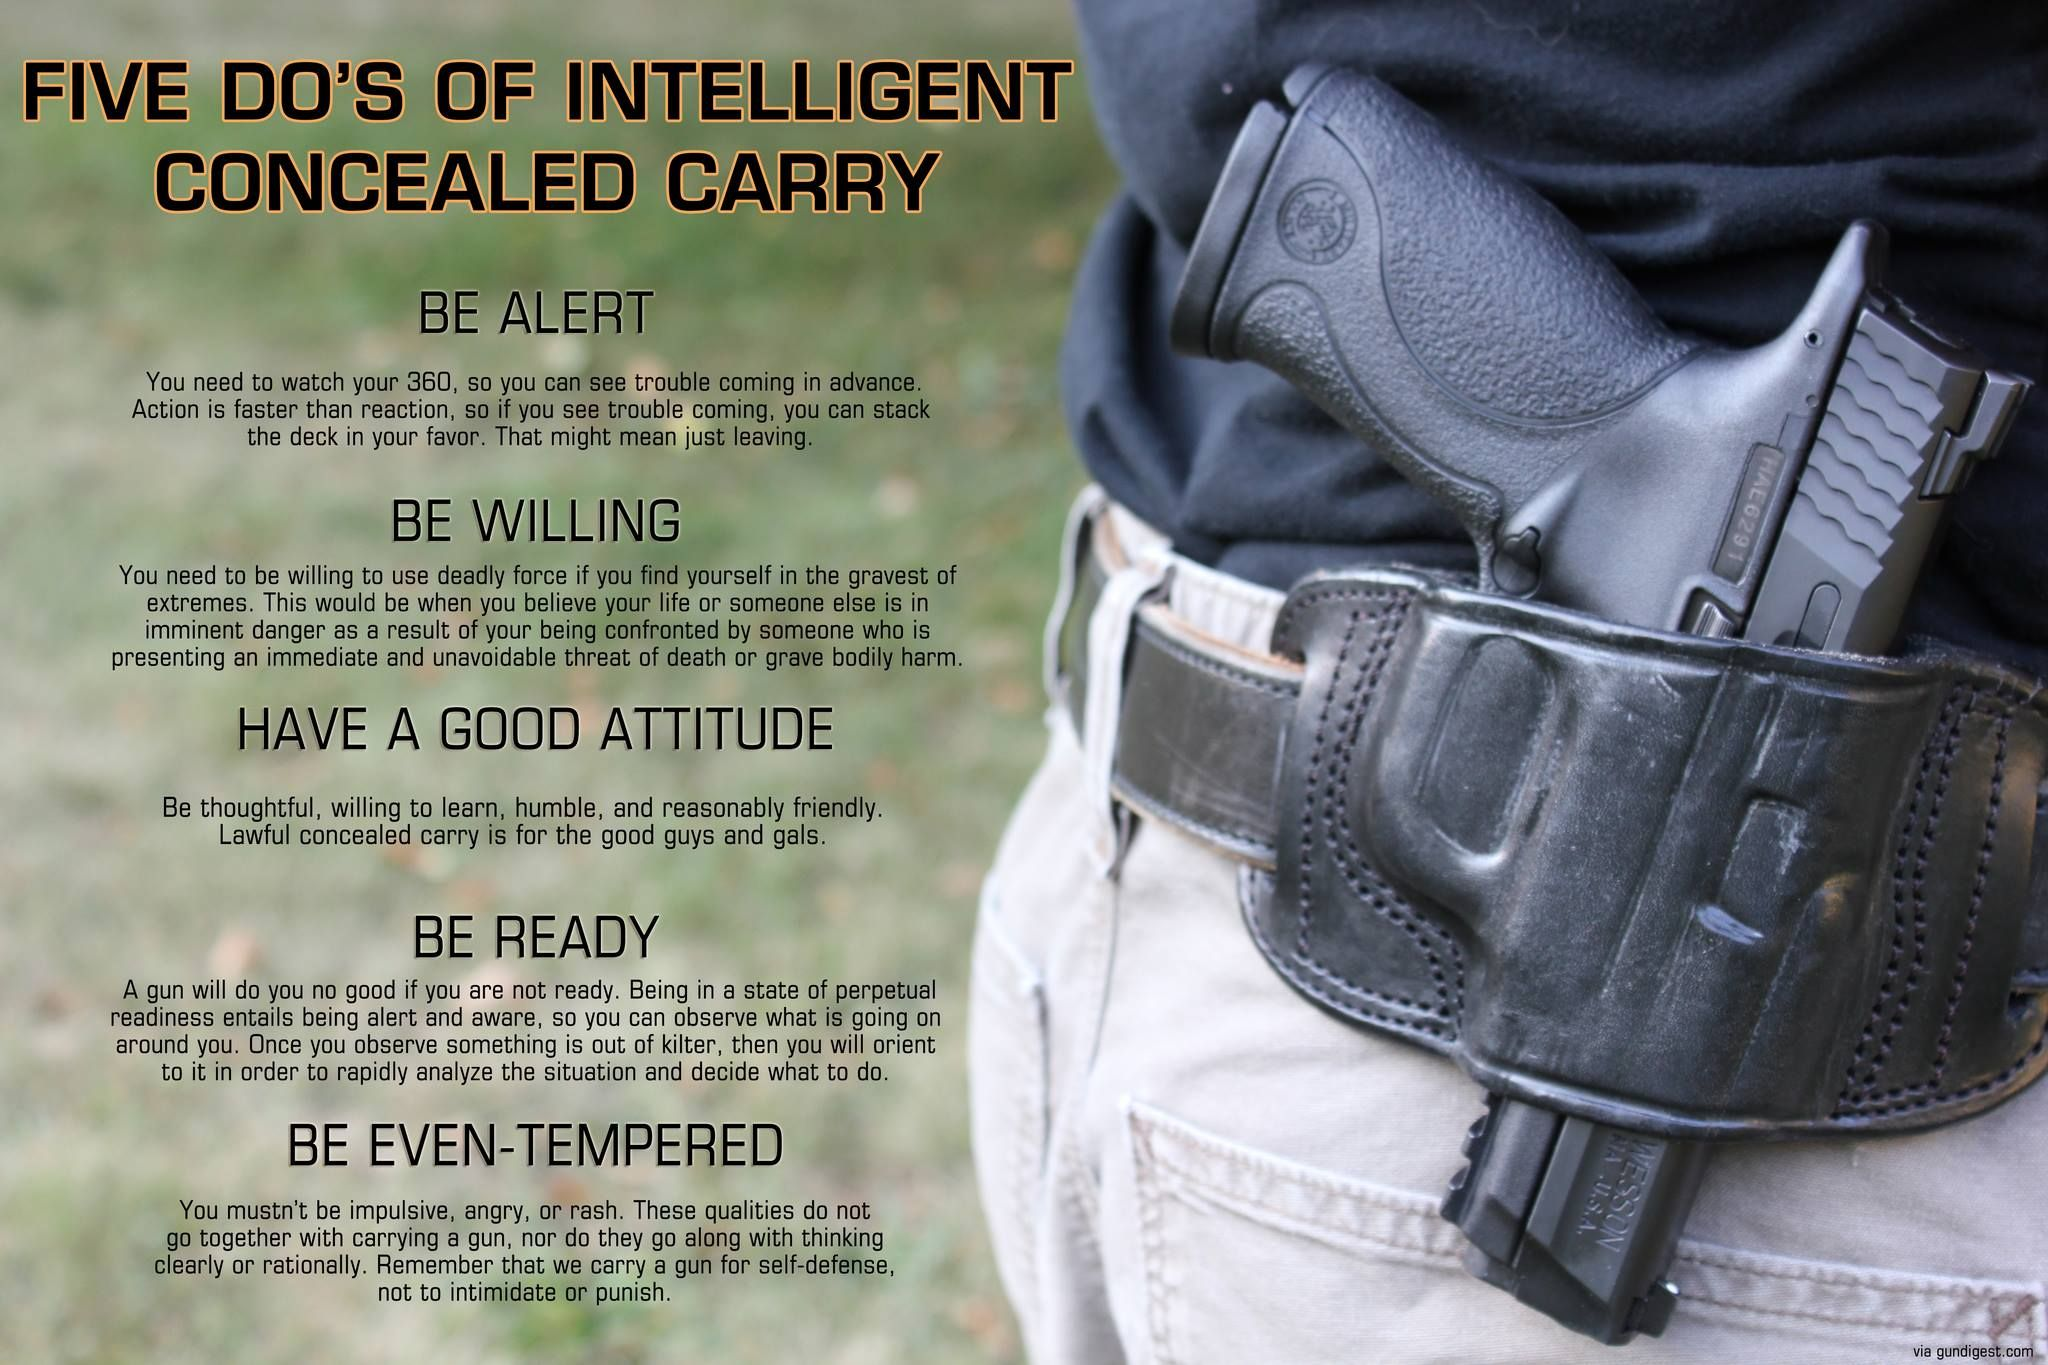 Be awarebeing aware entails being alert and willing